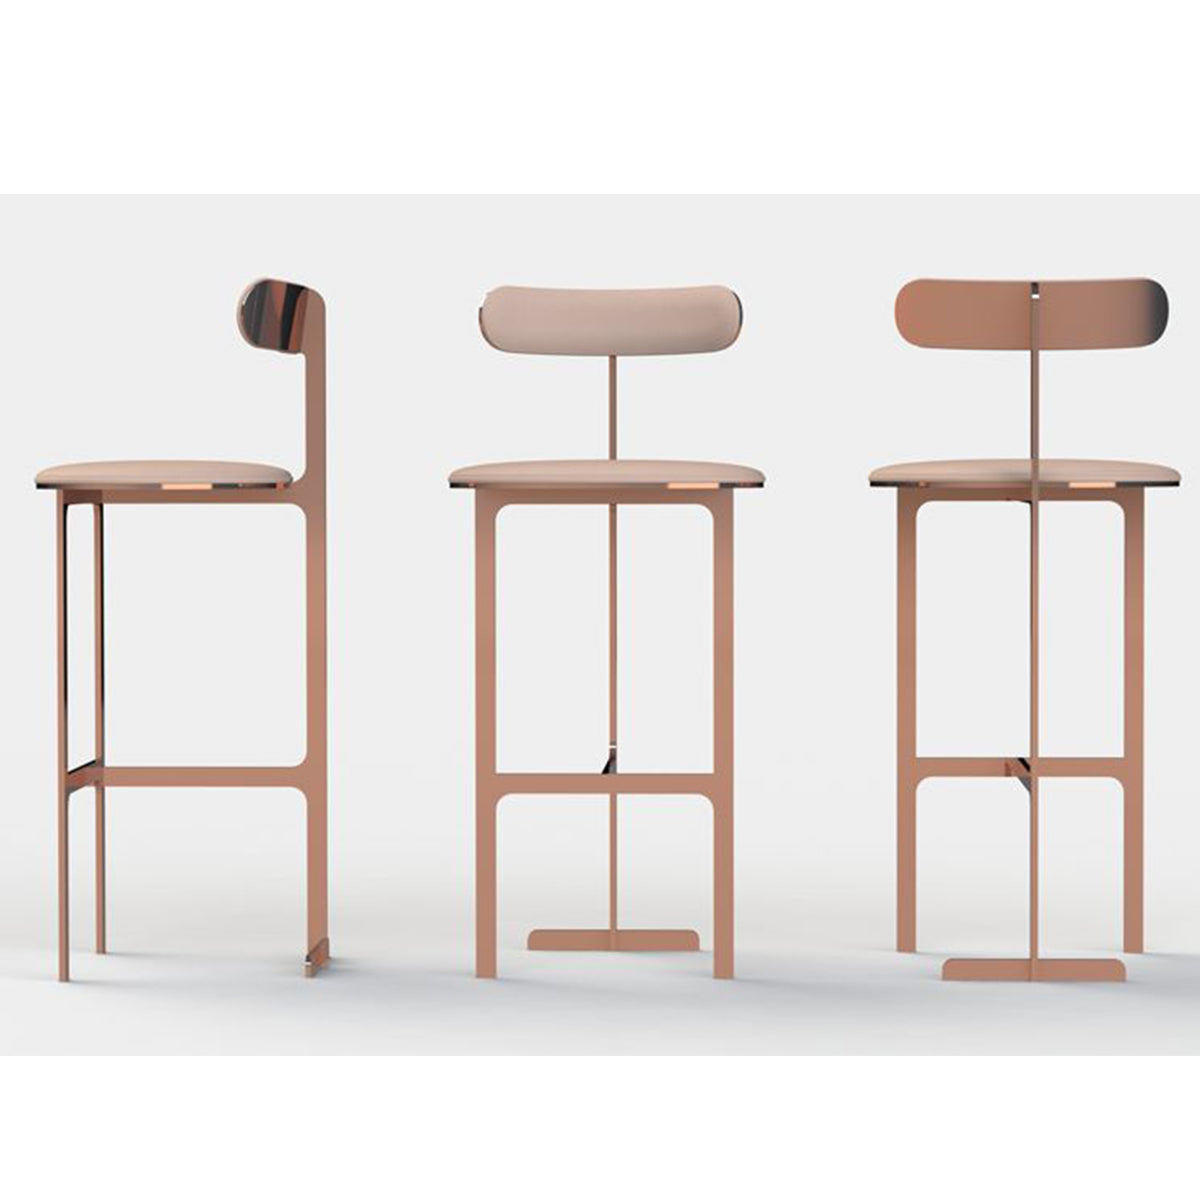 PARK PLACE STOOLS, Stool//Tabouret, MAN OF PARTS  - SORS